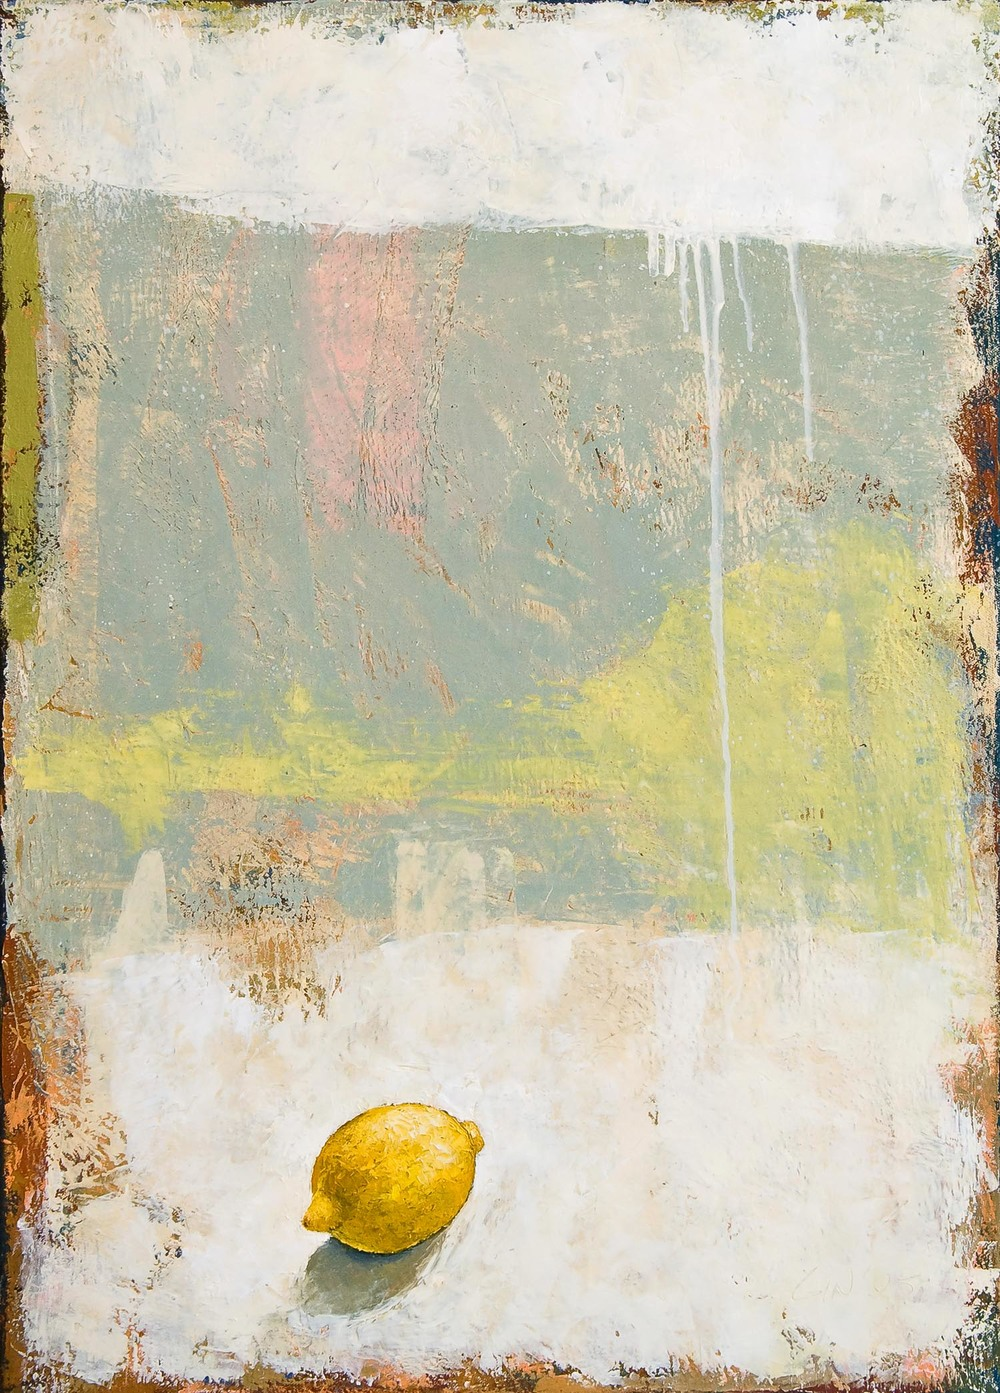 Just One Lemon   2005 oil on canvas 28 x 20 inches  Private collection